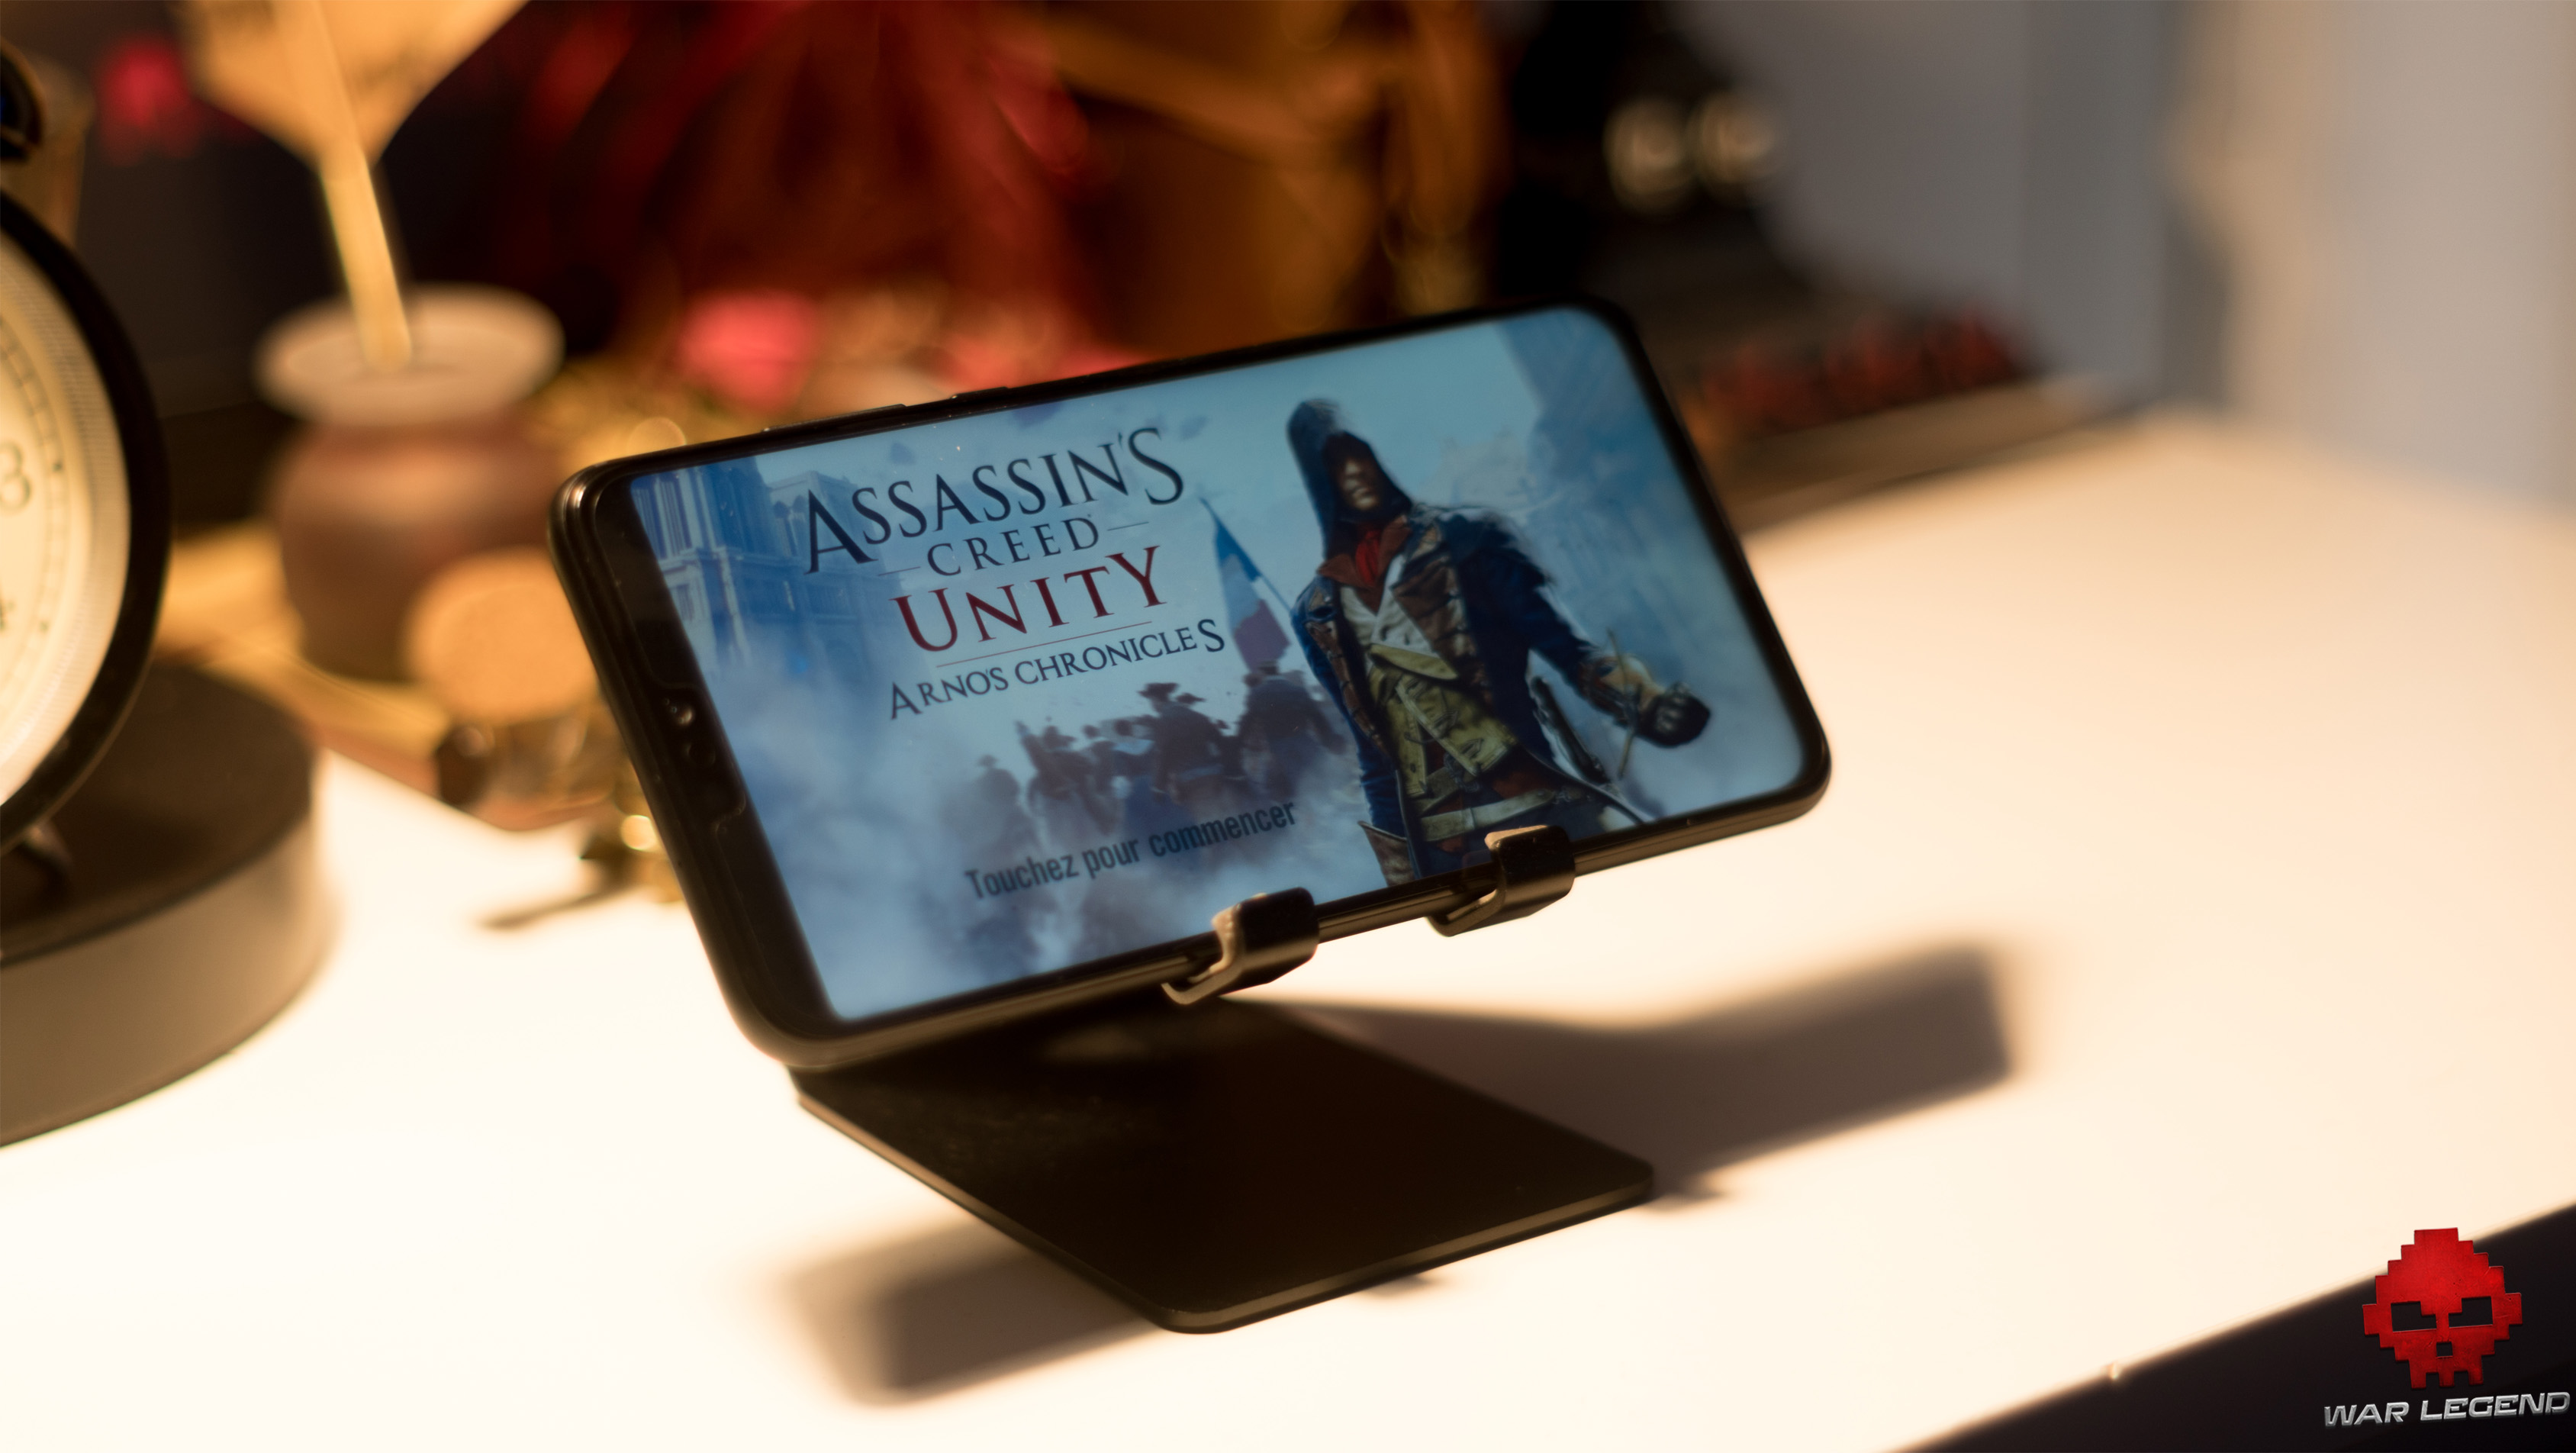 Honor 8x Assassin's creed unity paysage